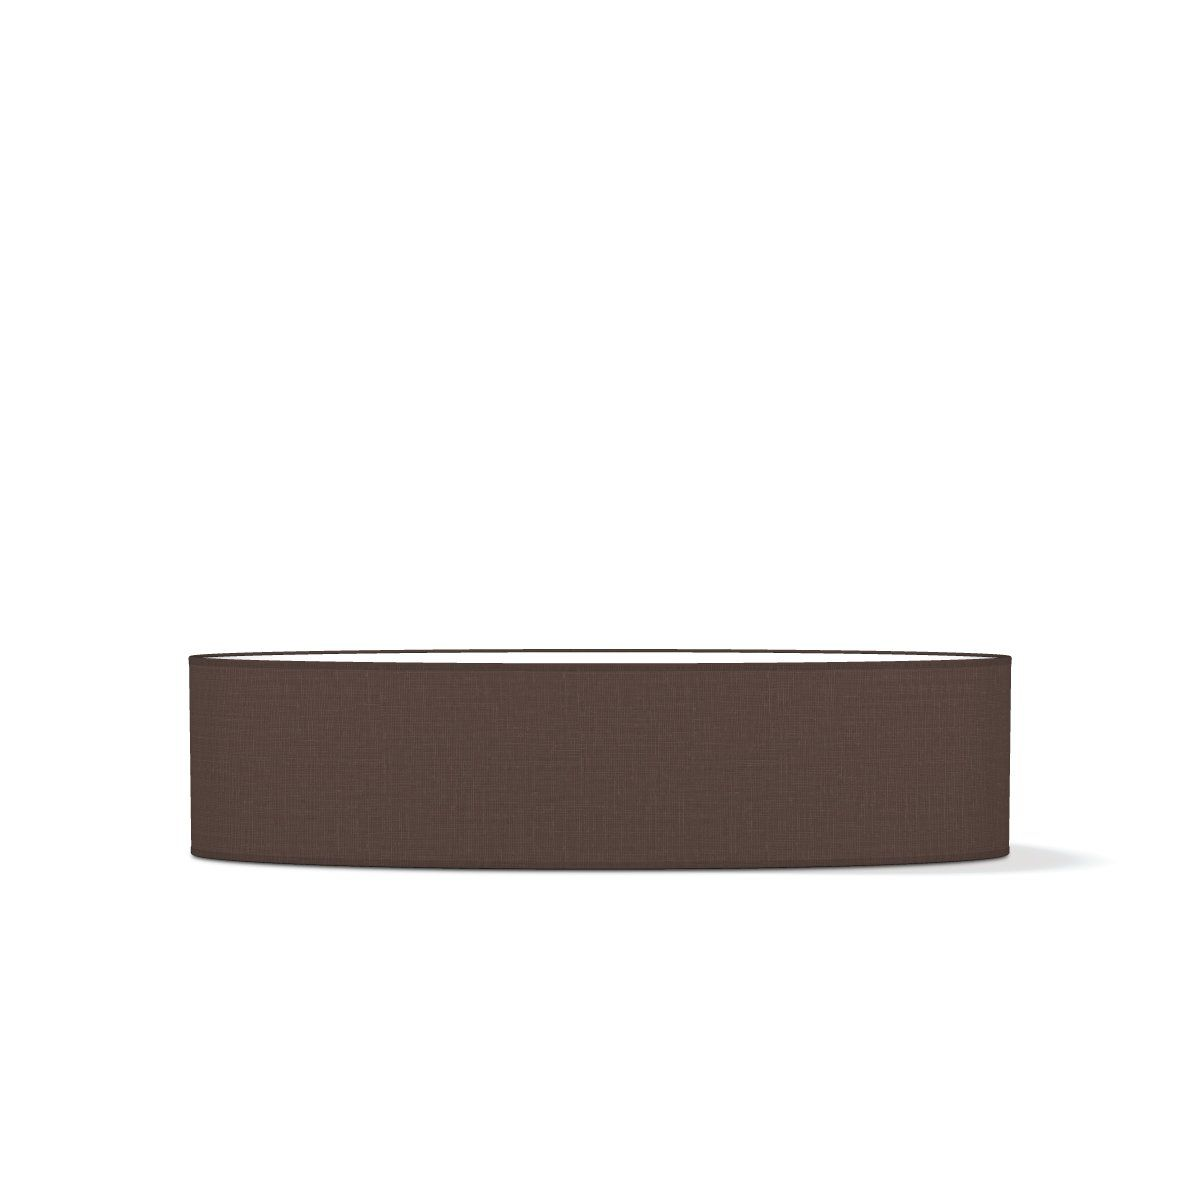 Home sweet home lampenkap Big oval  100 cm - bruin